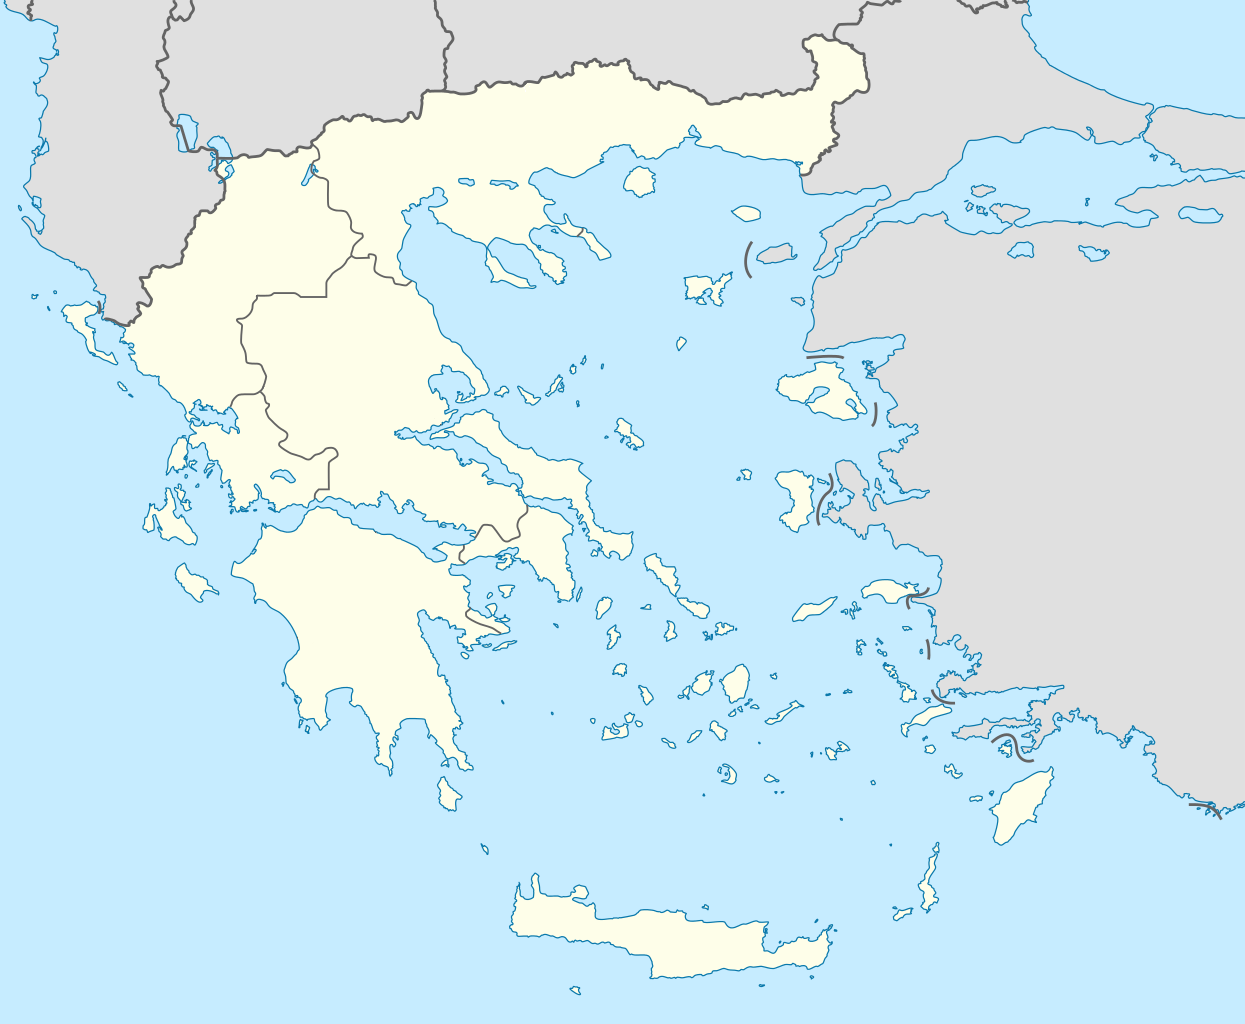 Greece Map Blank.File Decentralized Administrations Of Greece Blank Map Png